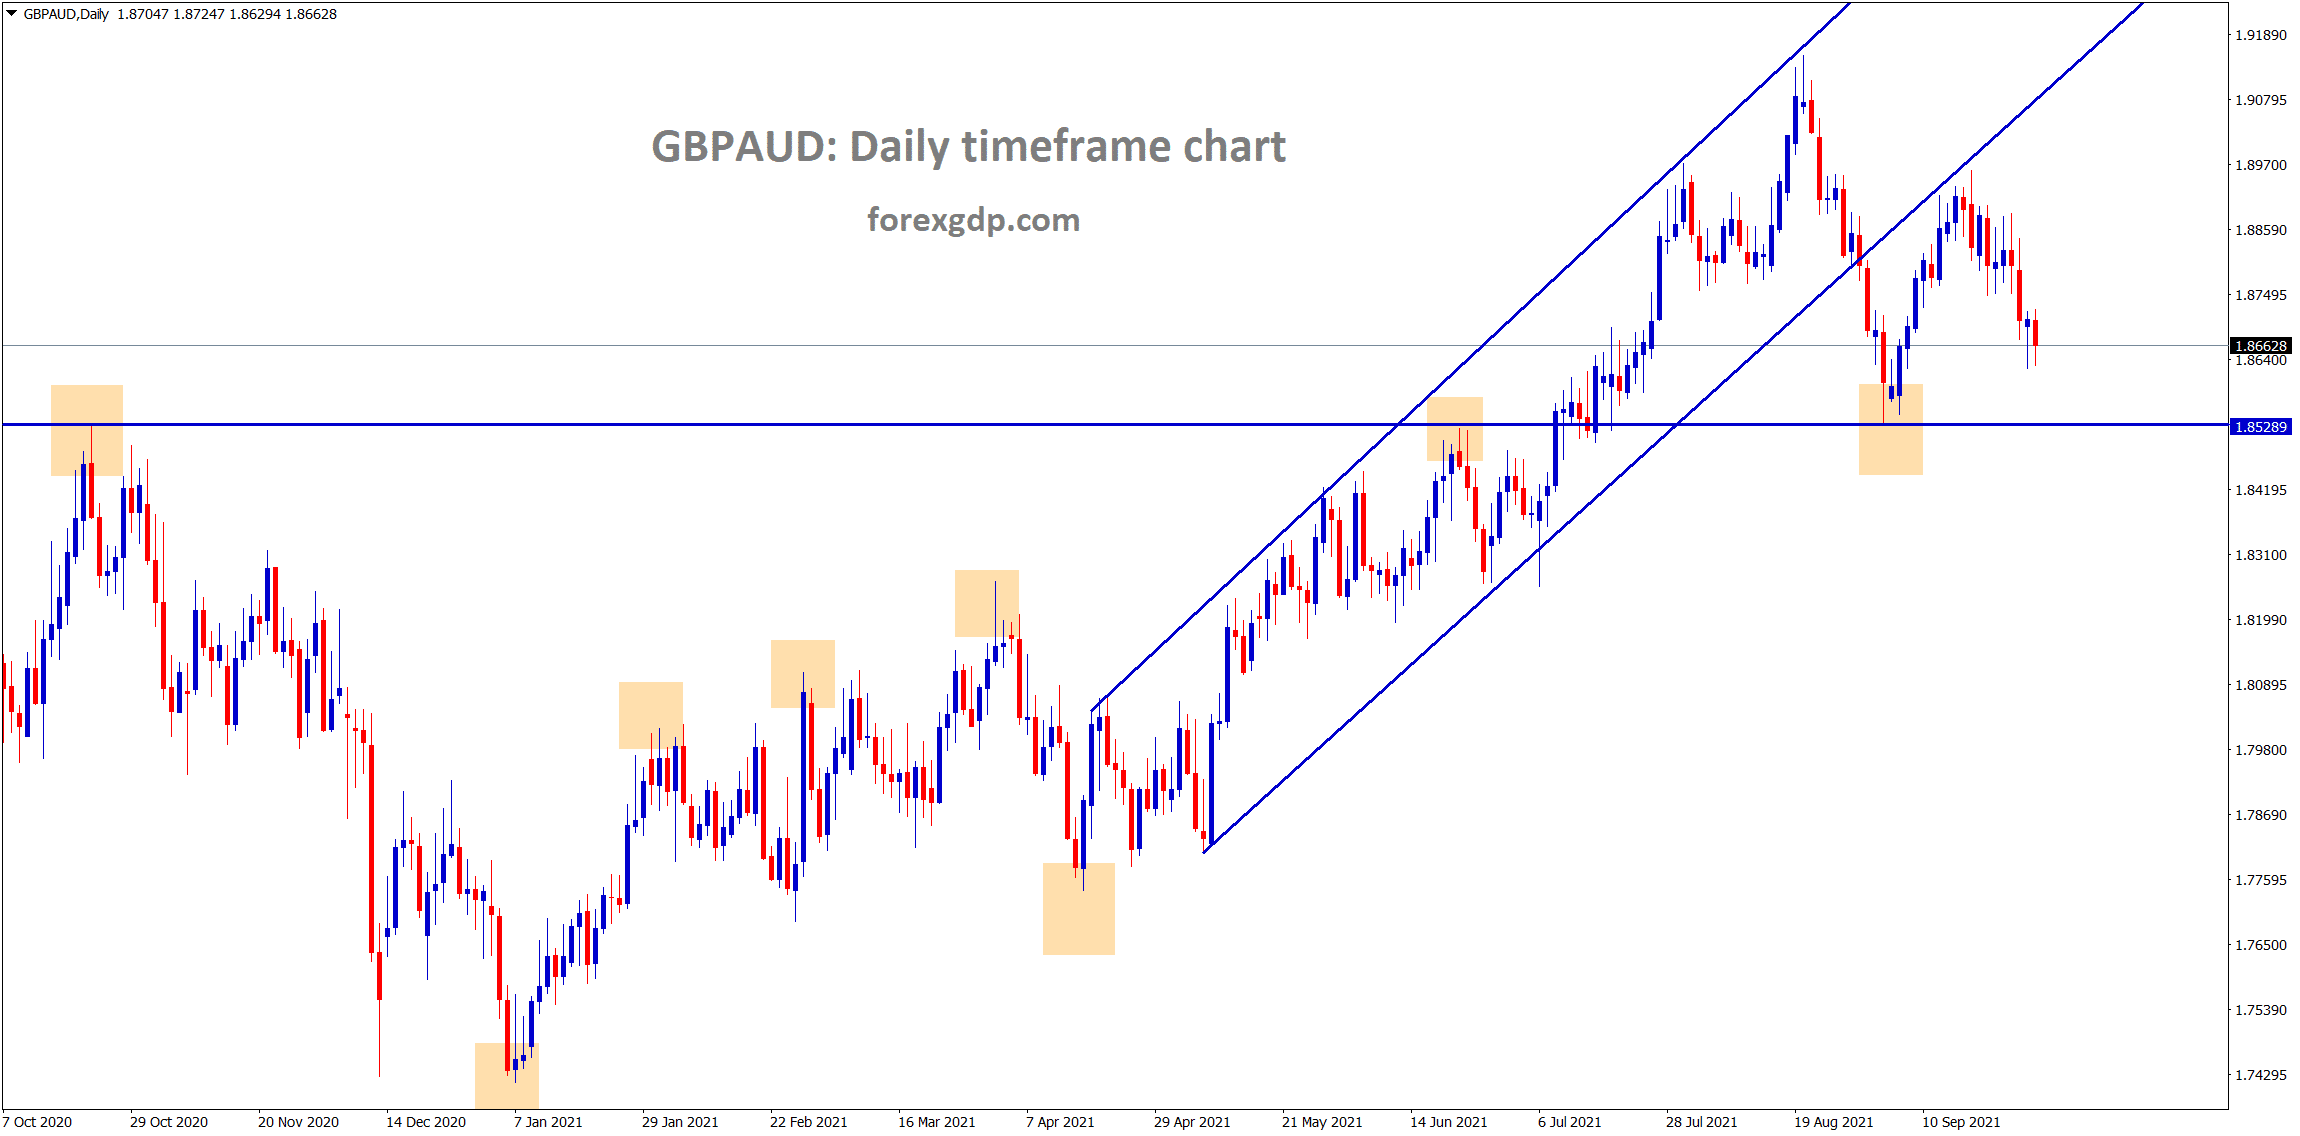 GBPAUD is making correction after retesting the broken level of the ascending channel